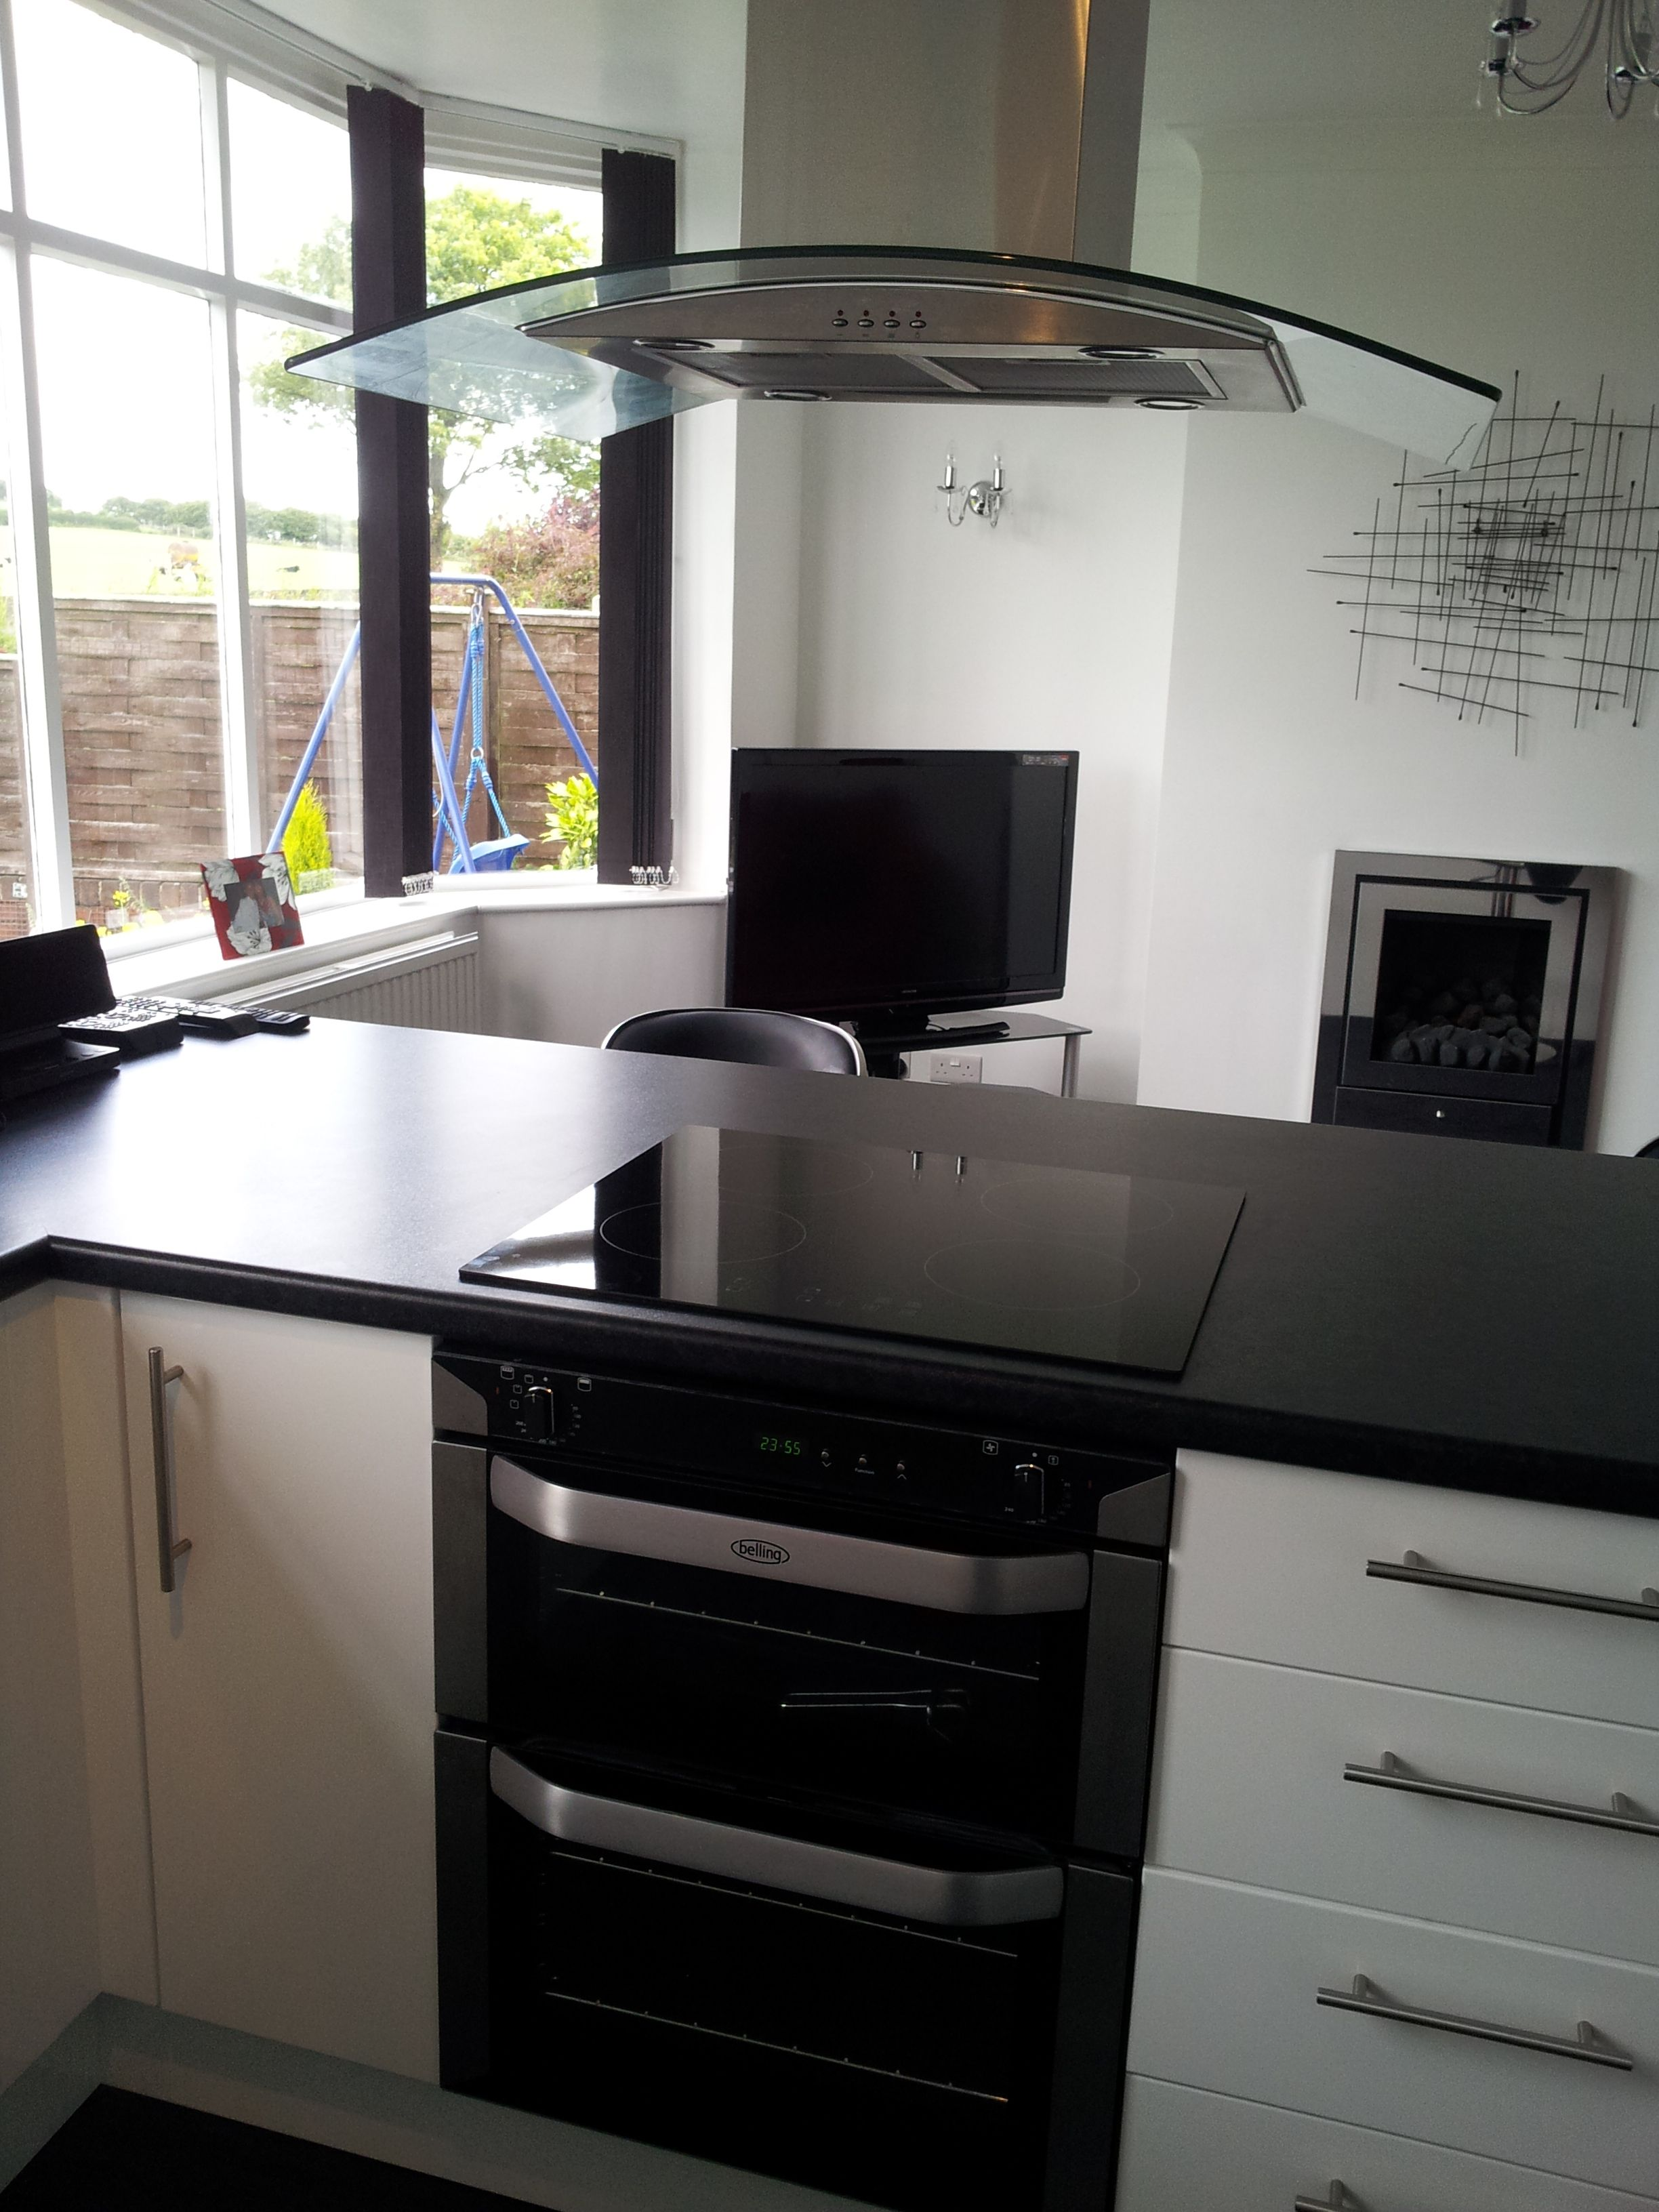 Sleek Modern Black White Kitchen With Breakfast Bar Gl Island Hood Integrated Double Oven Induction Hob